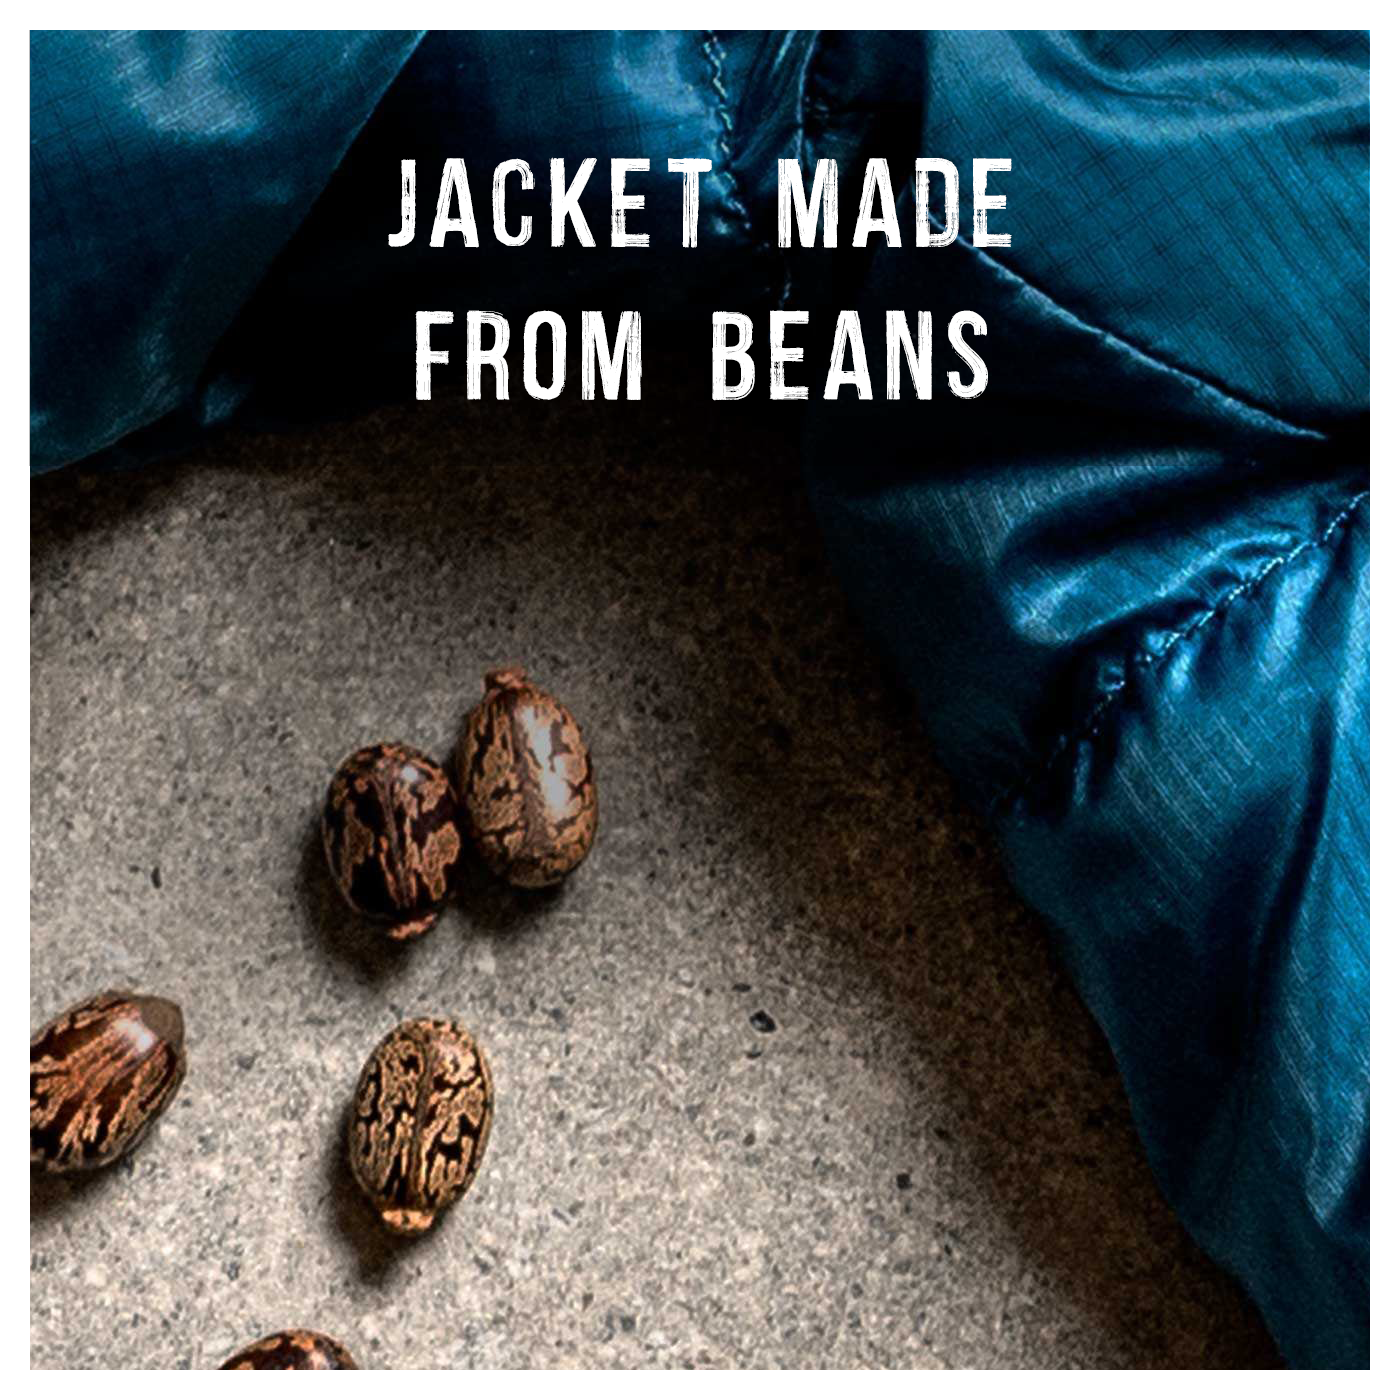 Jackets made from beans